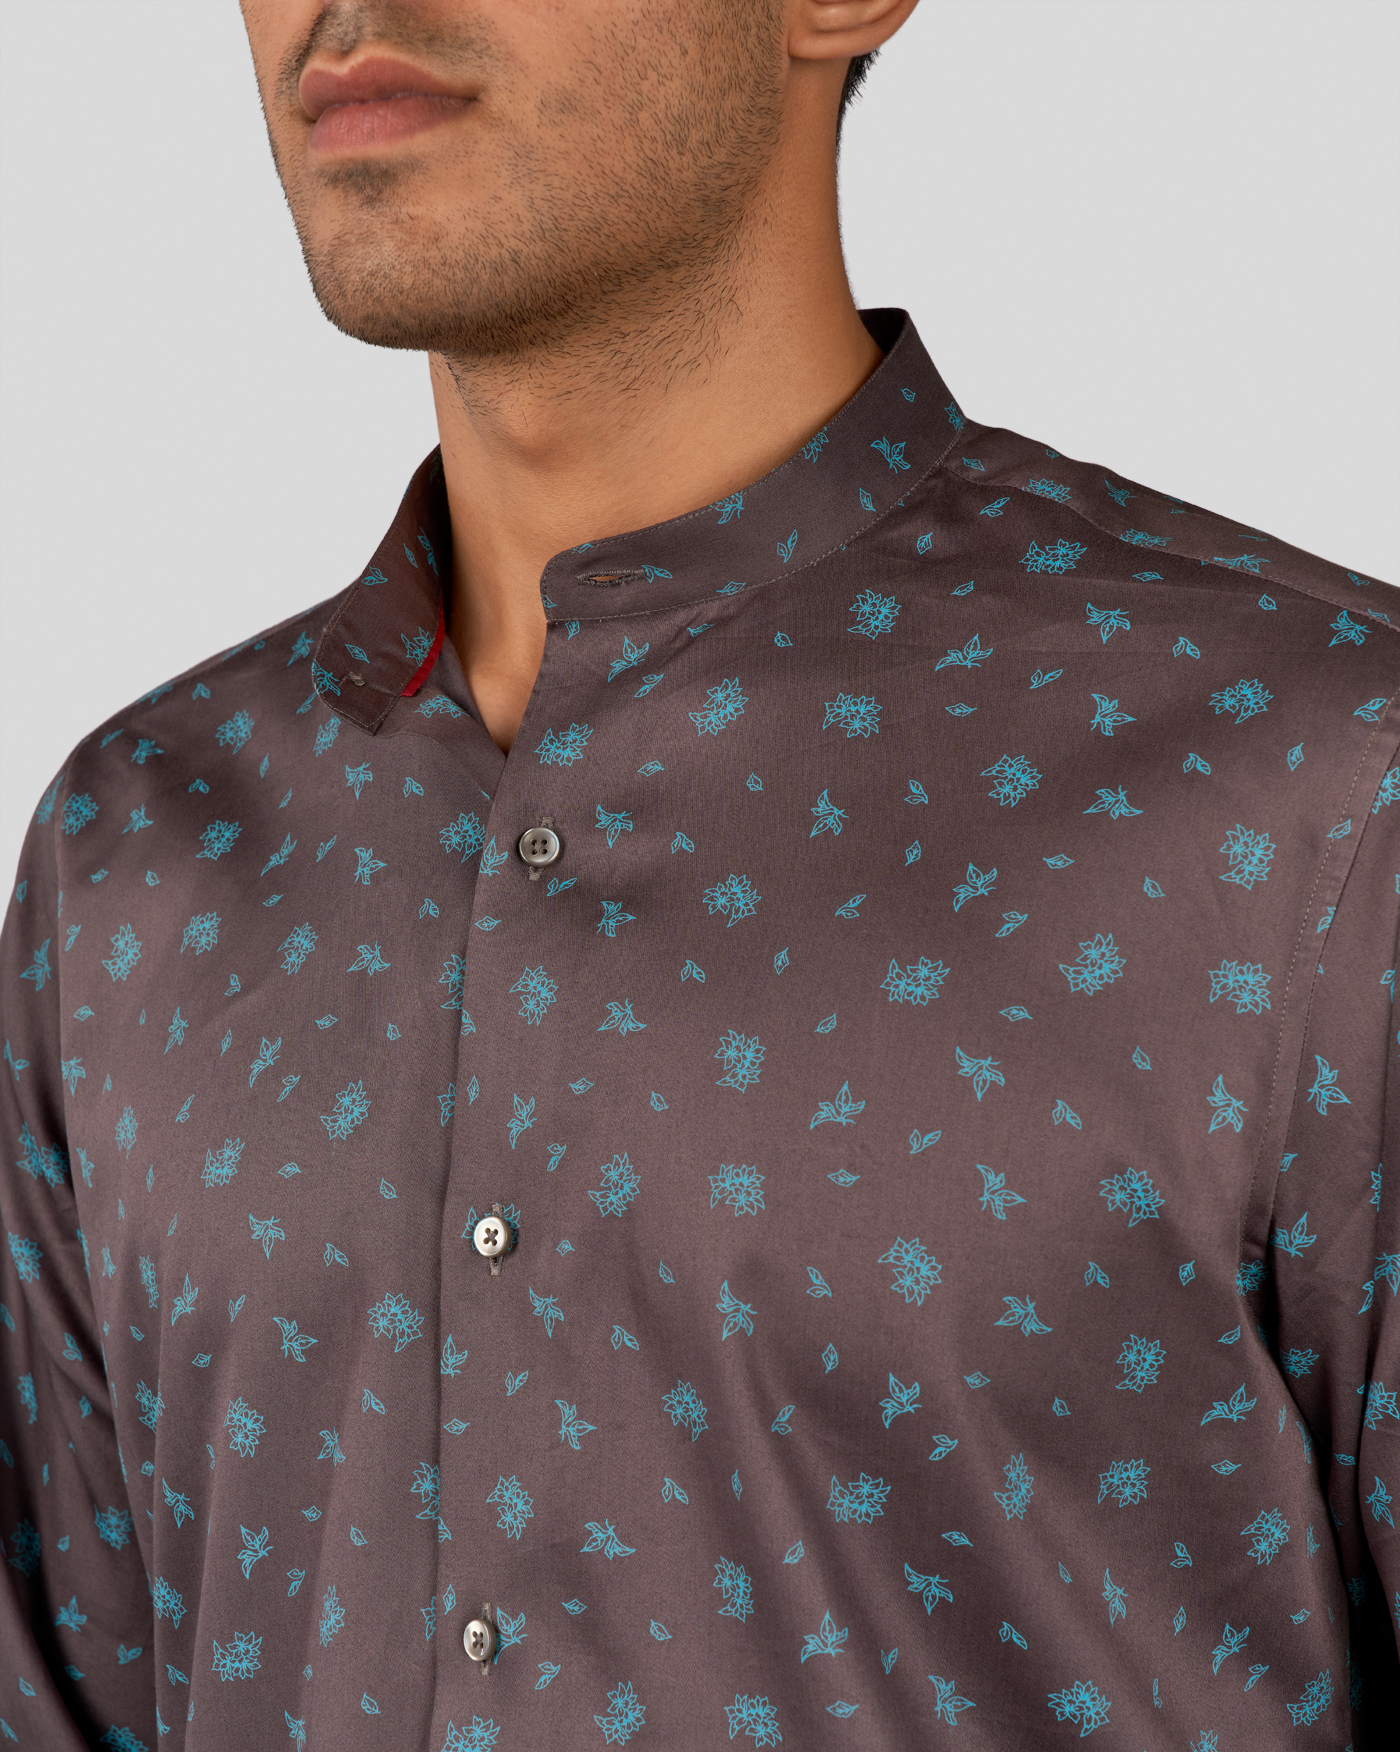 Teal Blooms Shirt